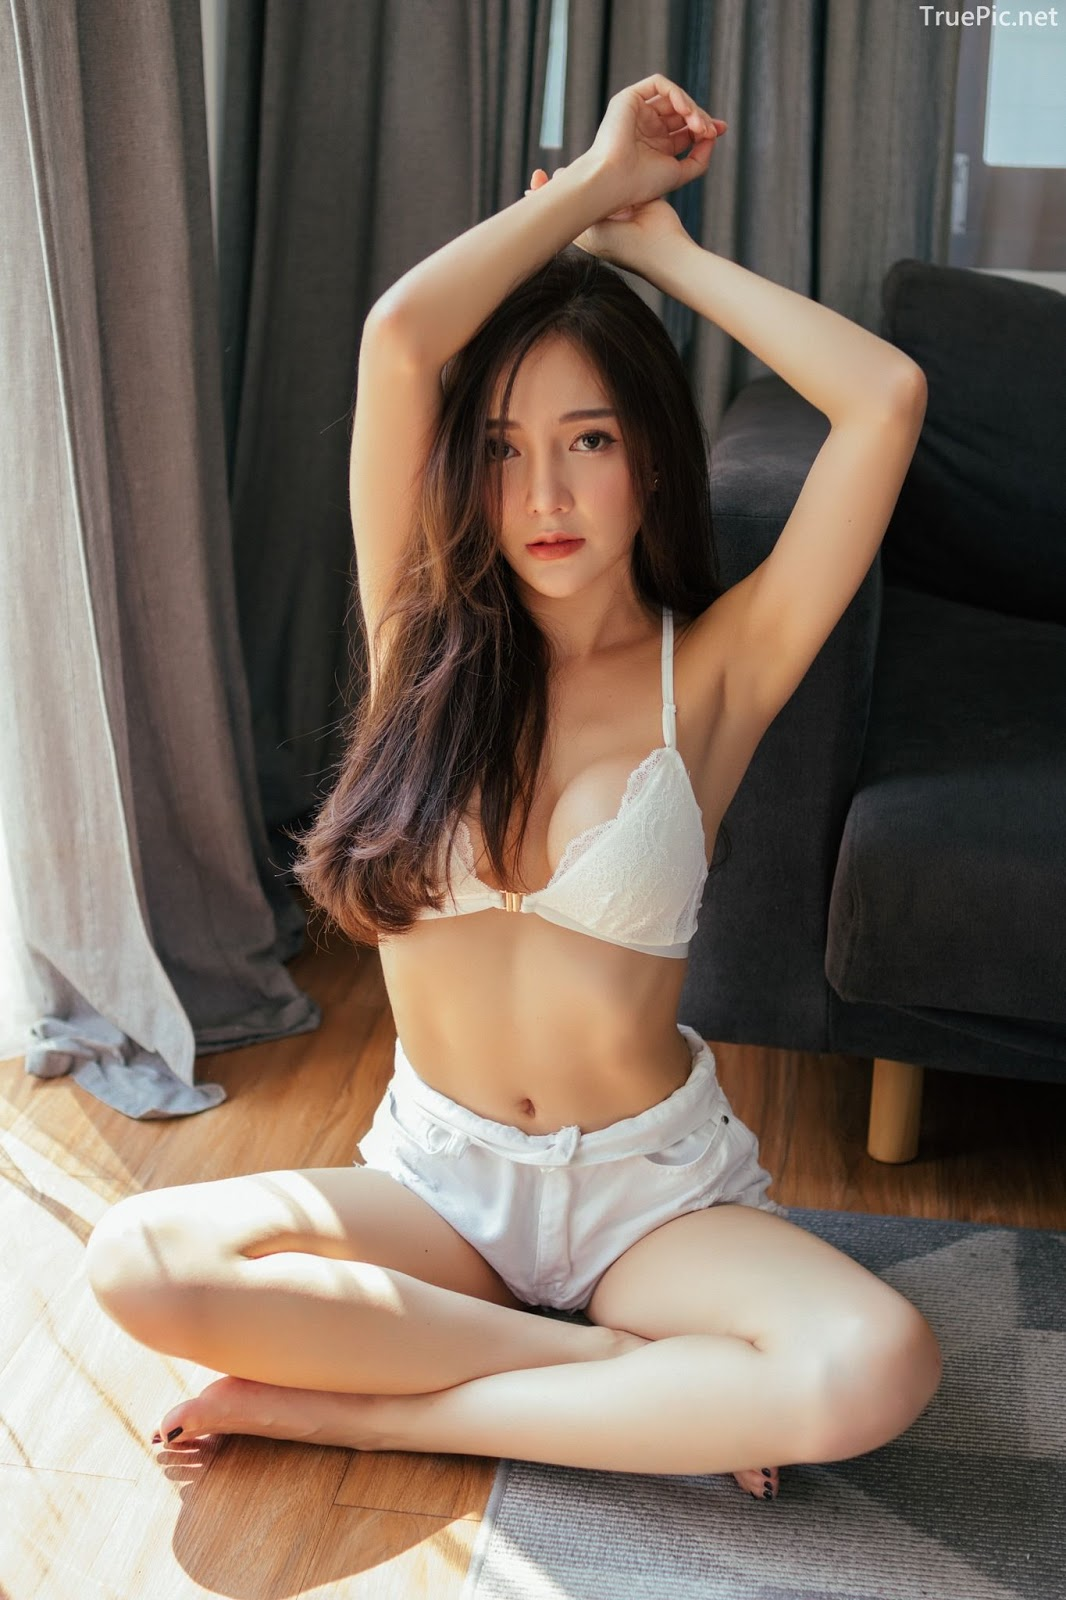 Thailand sexy model Rossarin Klinhom with photo album By your side - Picture 6